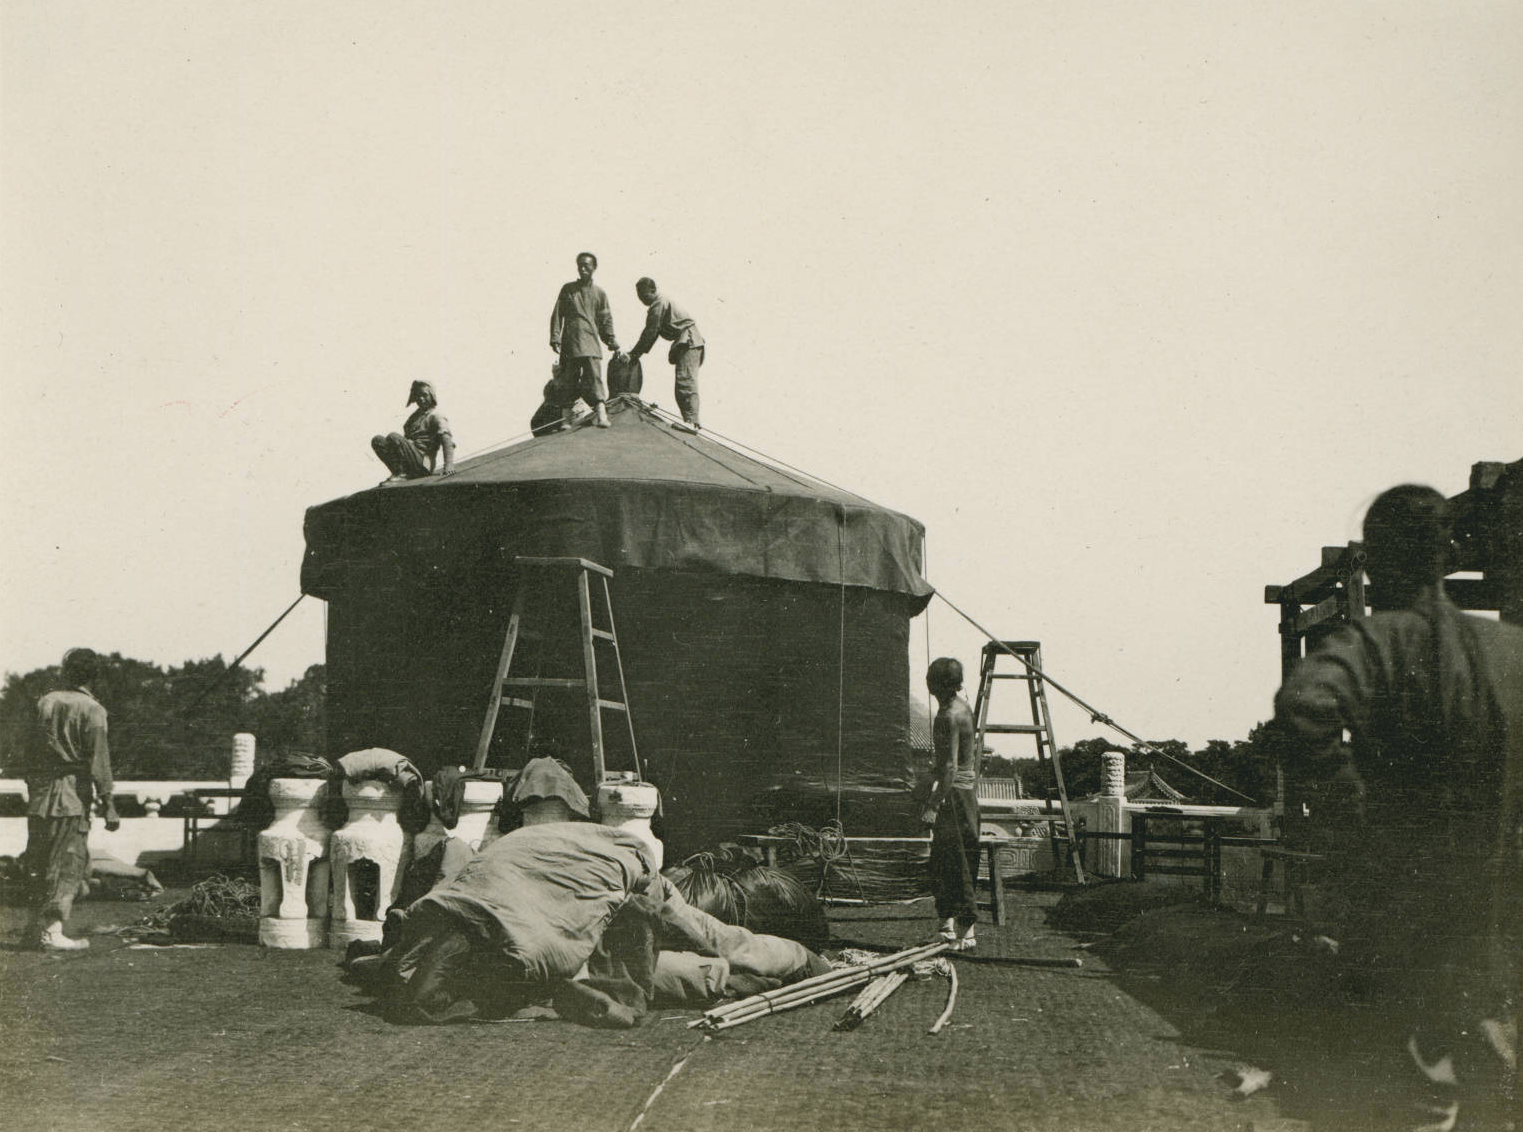 Making preparations for the visit of the Emperor, 1909-05